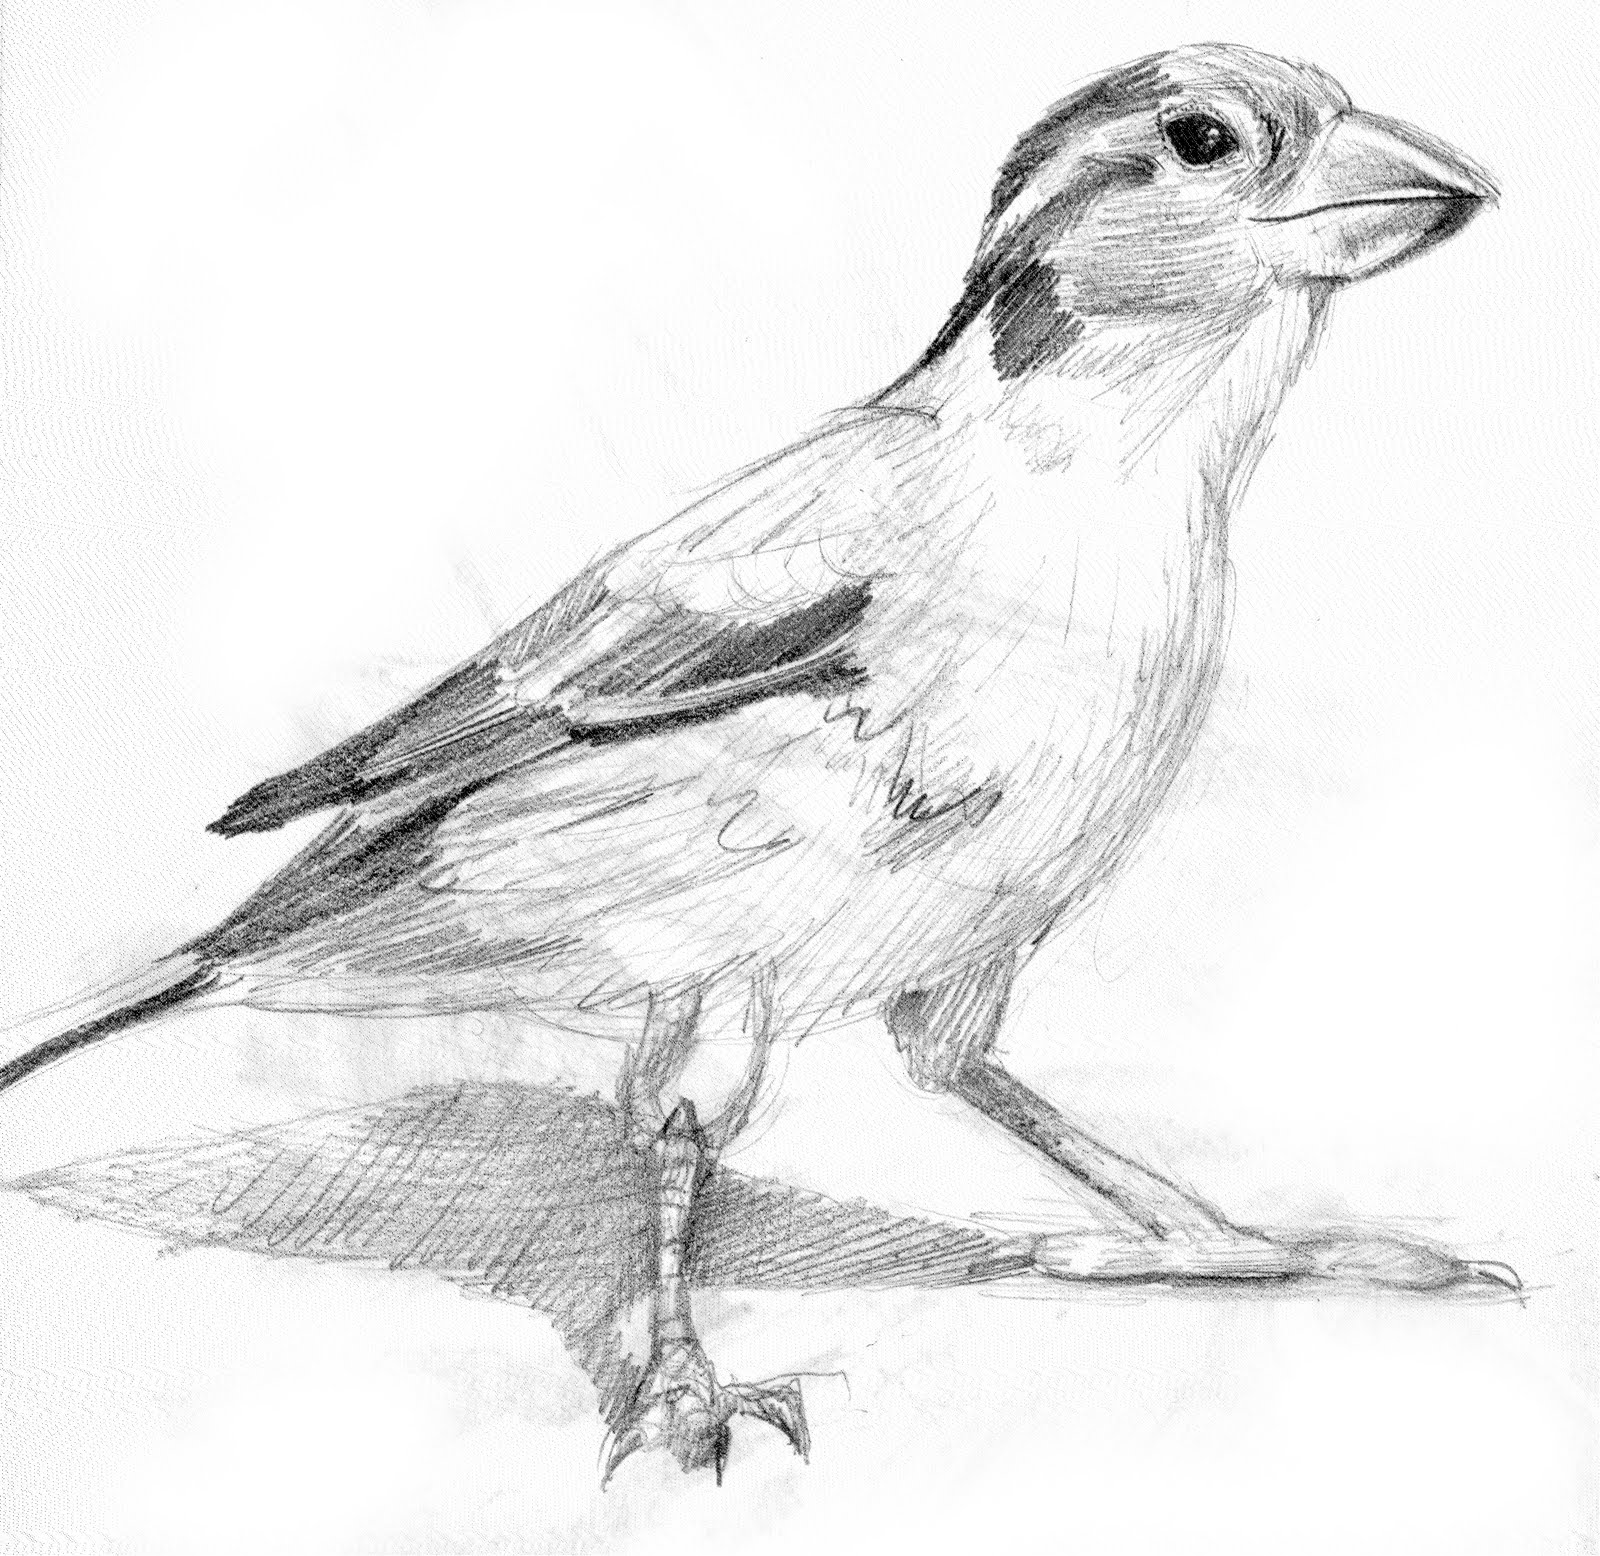 sparrow drawings flying sparrow drawing at paintingvalleycom explore sparrow drawings